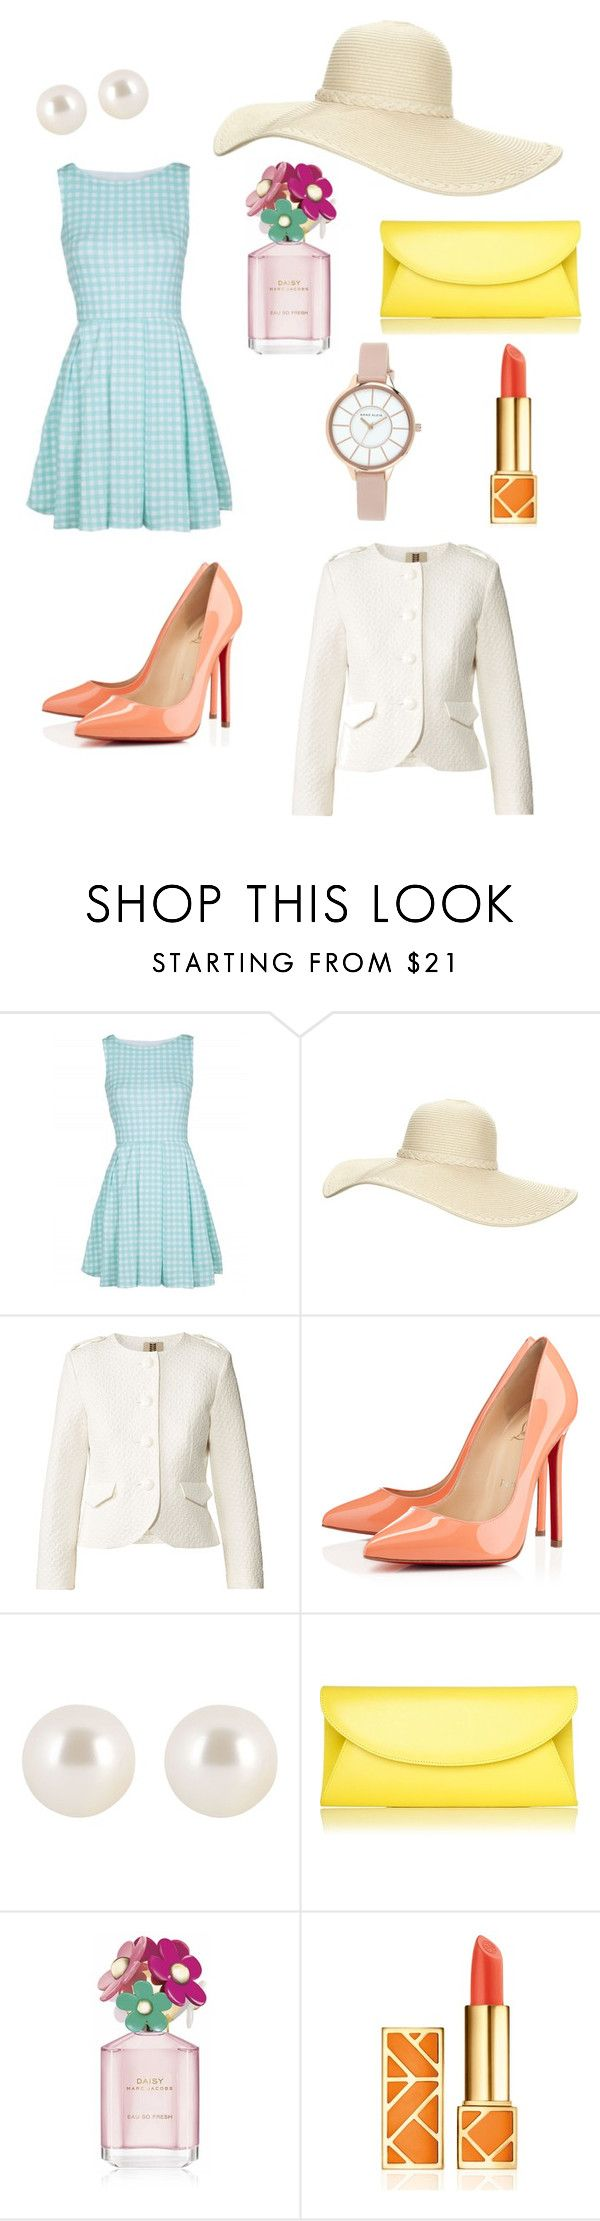 """""""Spring??"""" by anghelika-aleynik ❤ liked on Polyvore featuring Reger by Janet Reger, Orla Kiely, Christian Louboutin, Henri Bendel, L.K.Bennett, Marc Jacobs, Tory Burch and Anne Klein"""